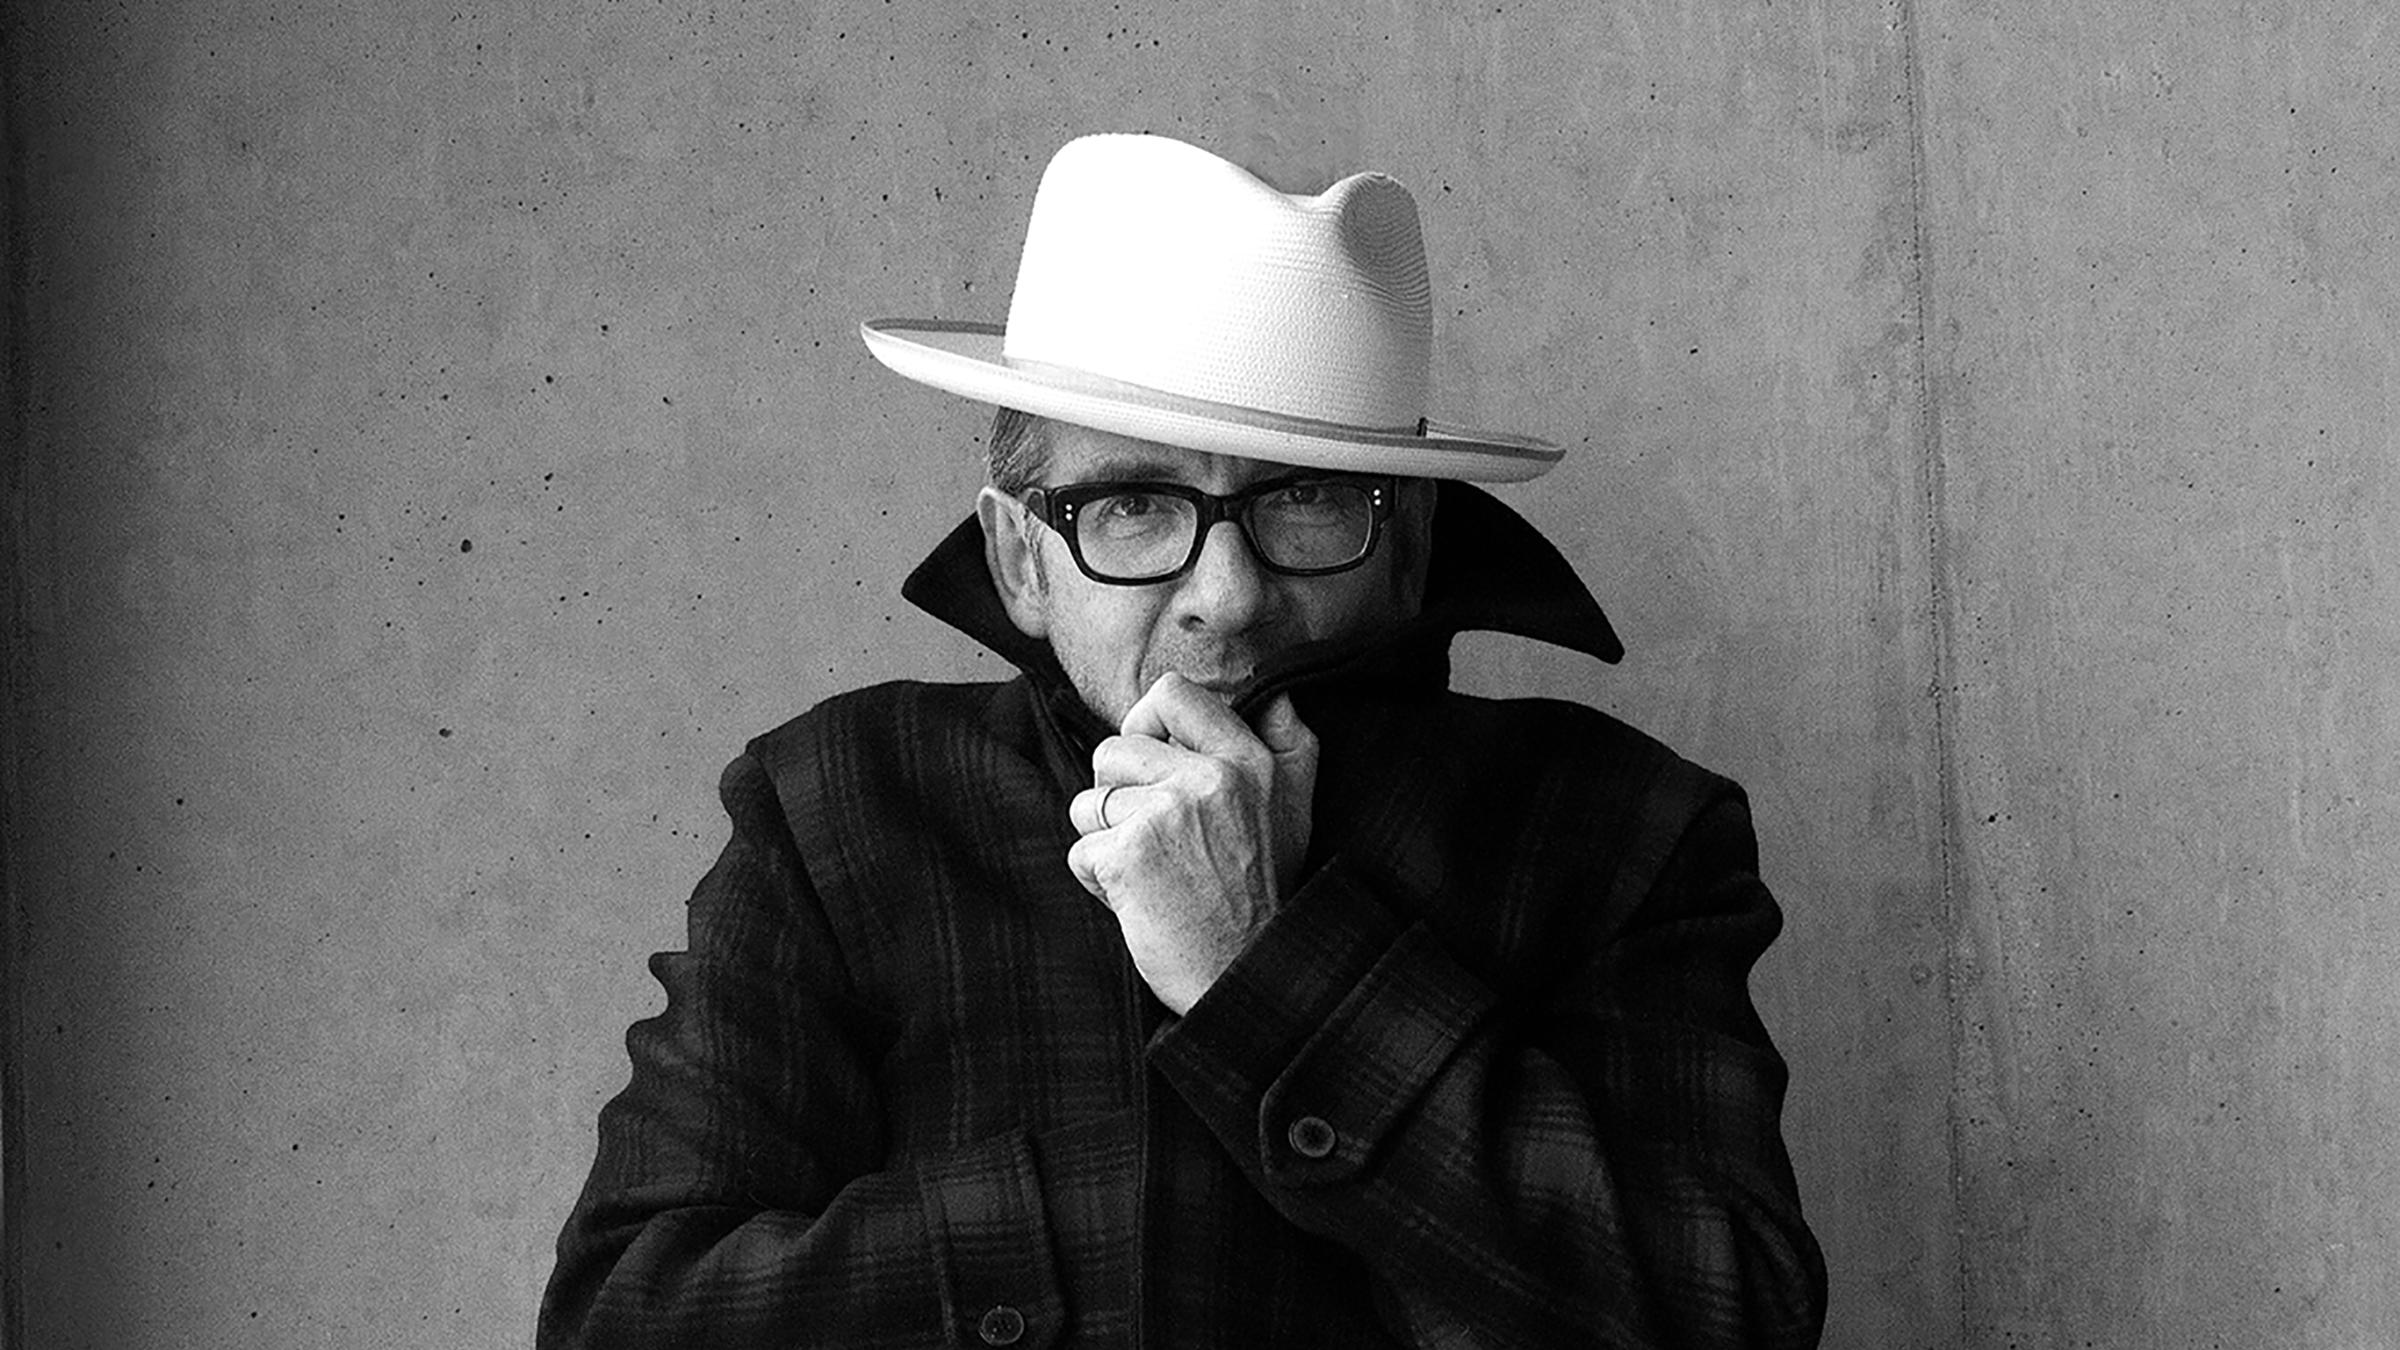 Look Now May Lack Some Sentimentality But Elvis Costello Does Return To Familiar Ground